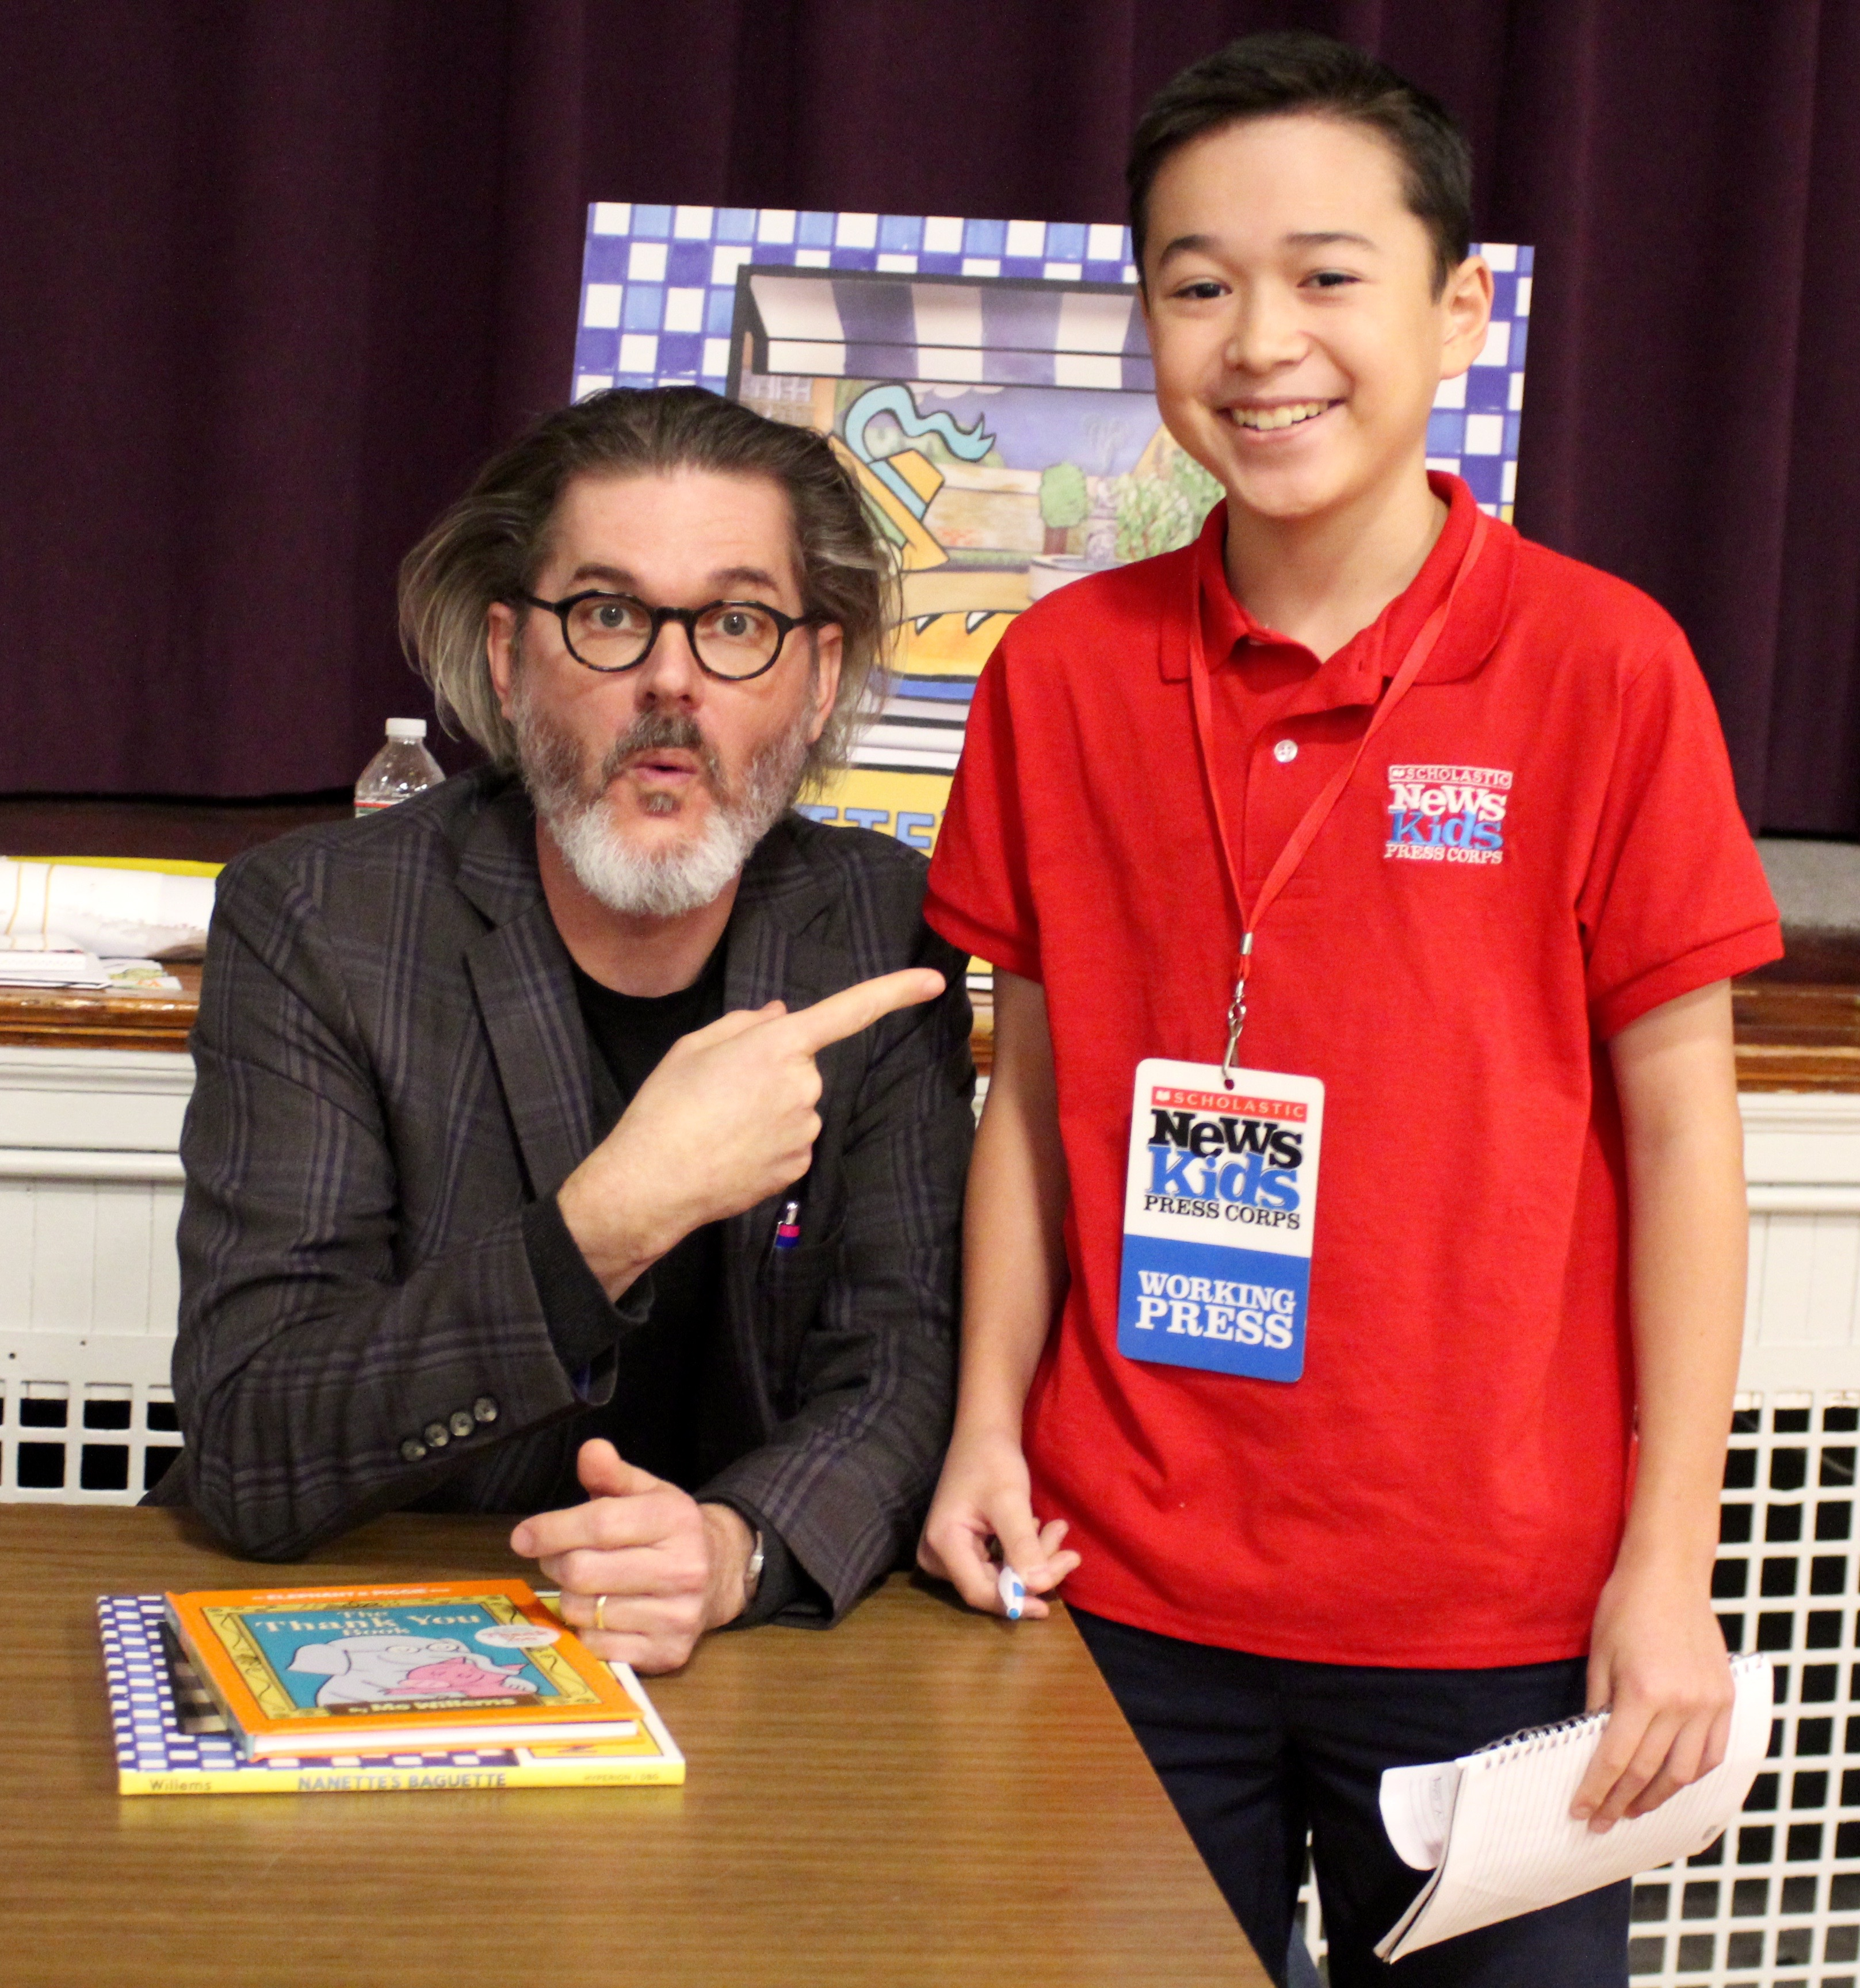 Max wows children's book author and illustrator Mo Willems at the Mother Brook Arts and Community Center in Dedham, Massachusetts.